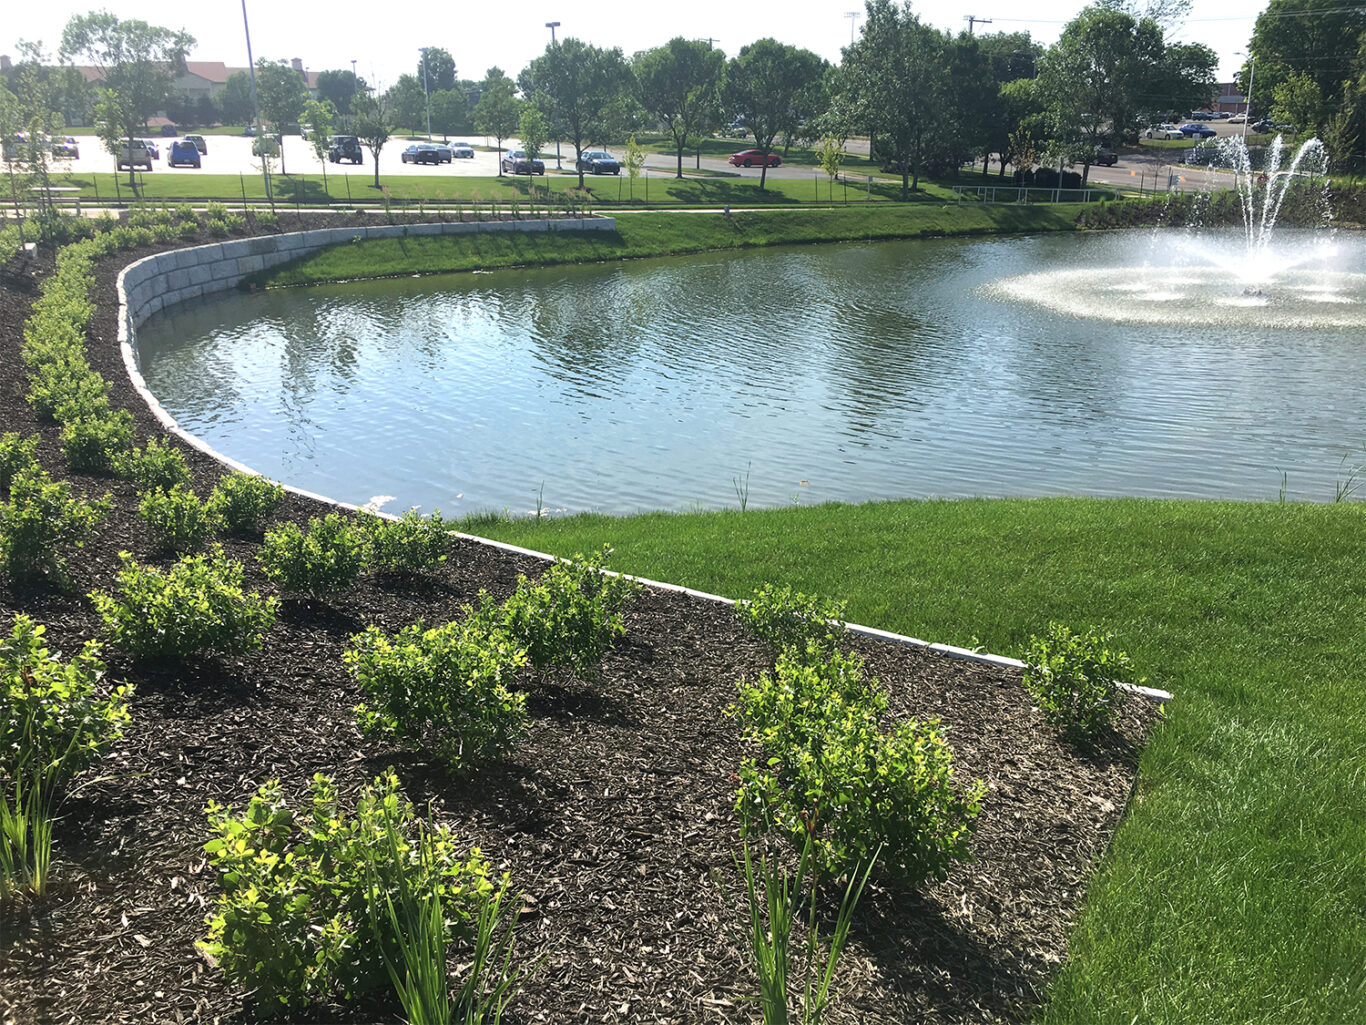 Overland Park Kansas Campus shows Retention pond health